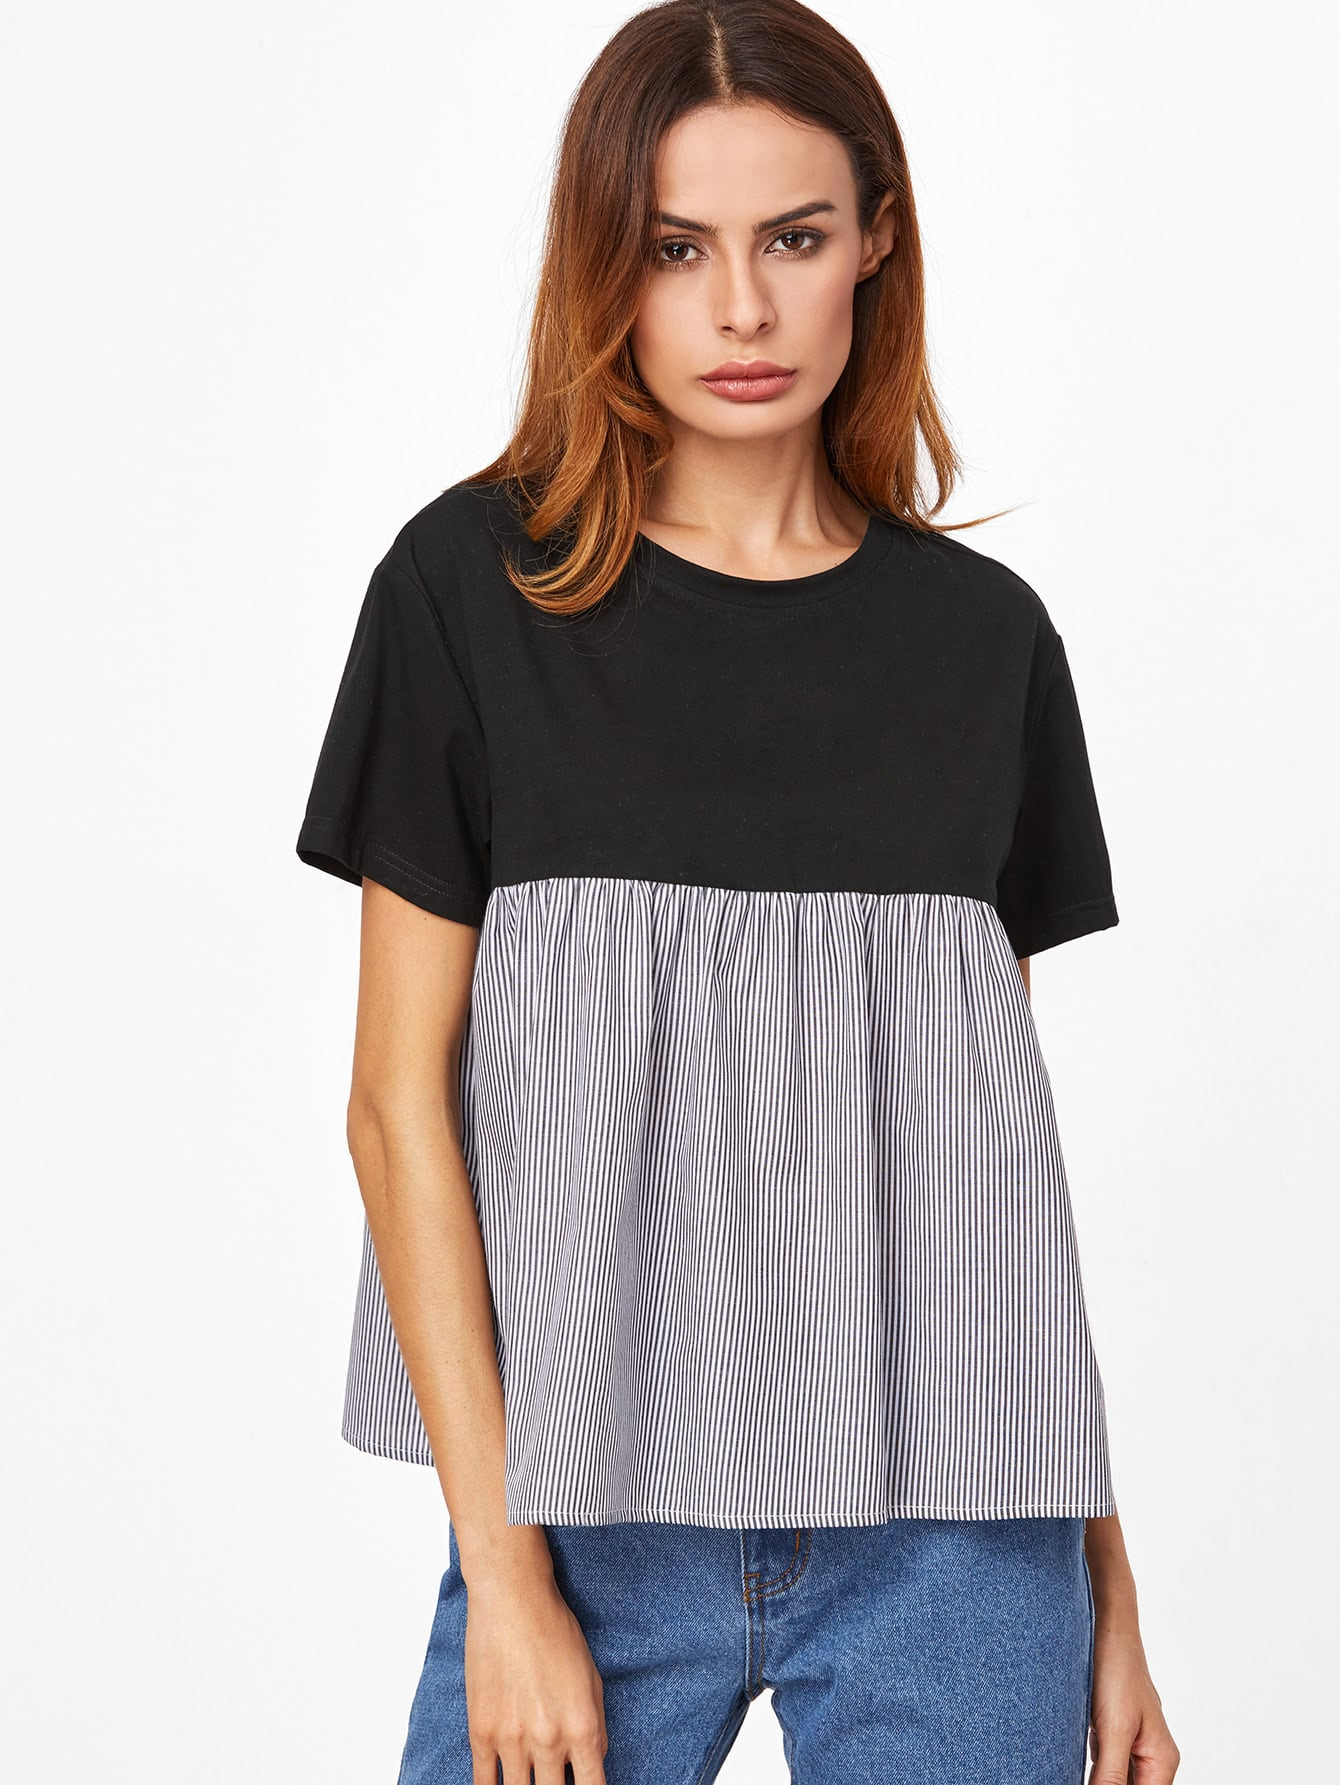 Contrast Striped Trim T-shirt tee161118712